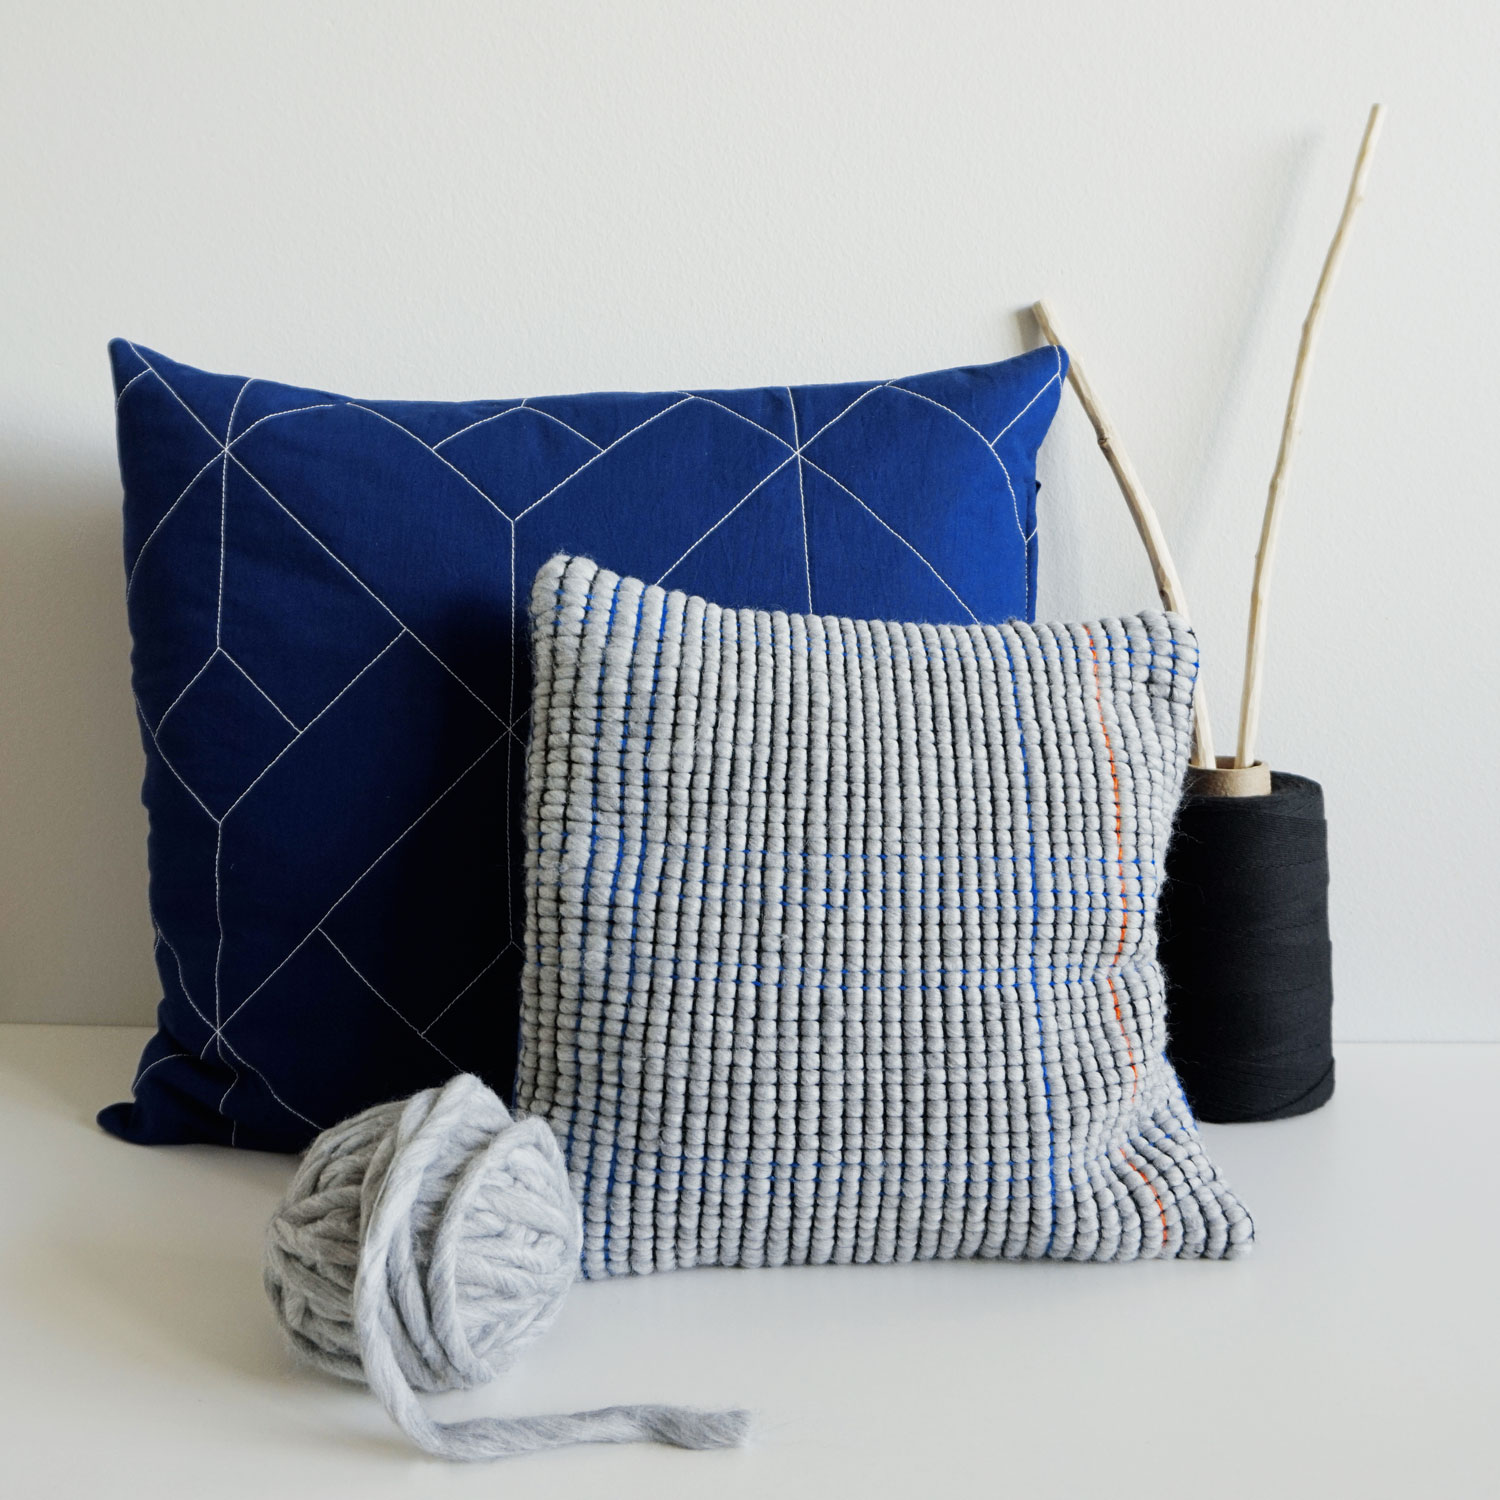 Extra large quilted pillow case with a subtle line graphic pattern. Cobalt blue recycled fabric and a simple envelope closure system.